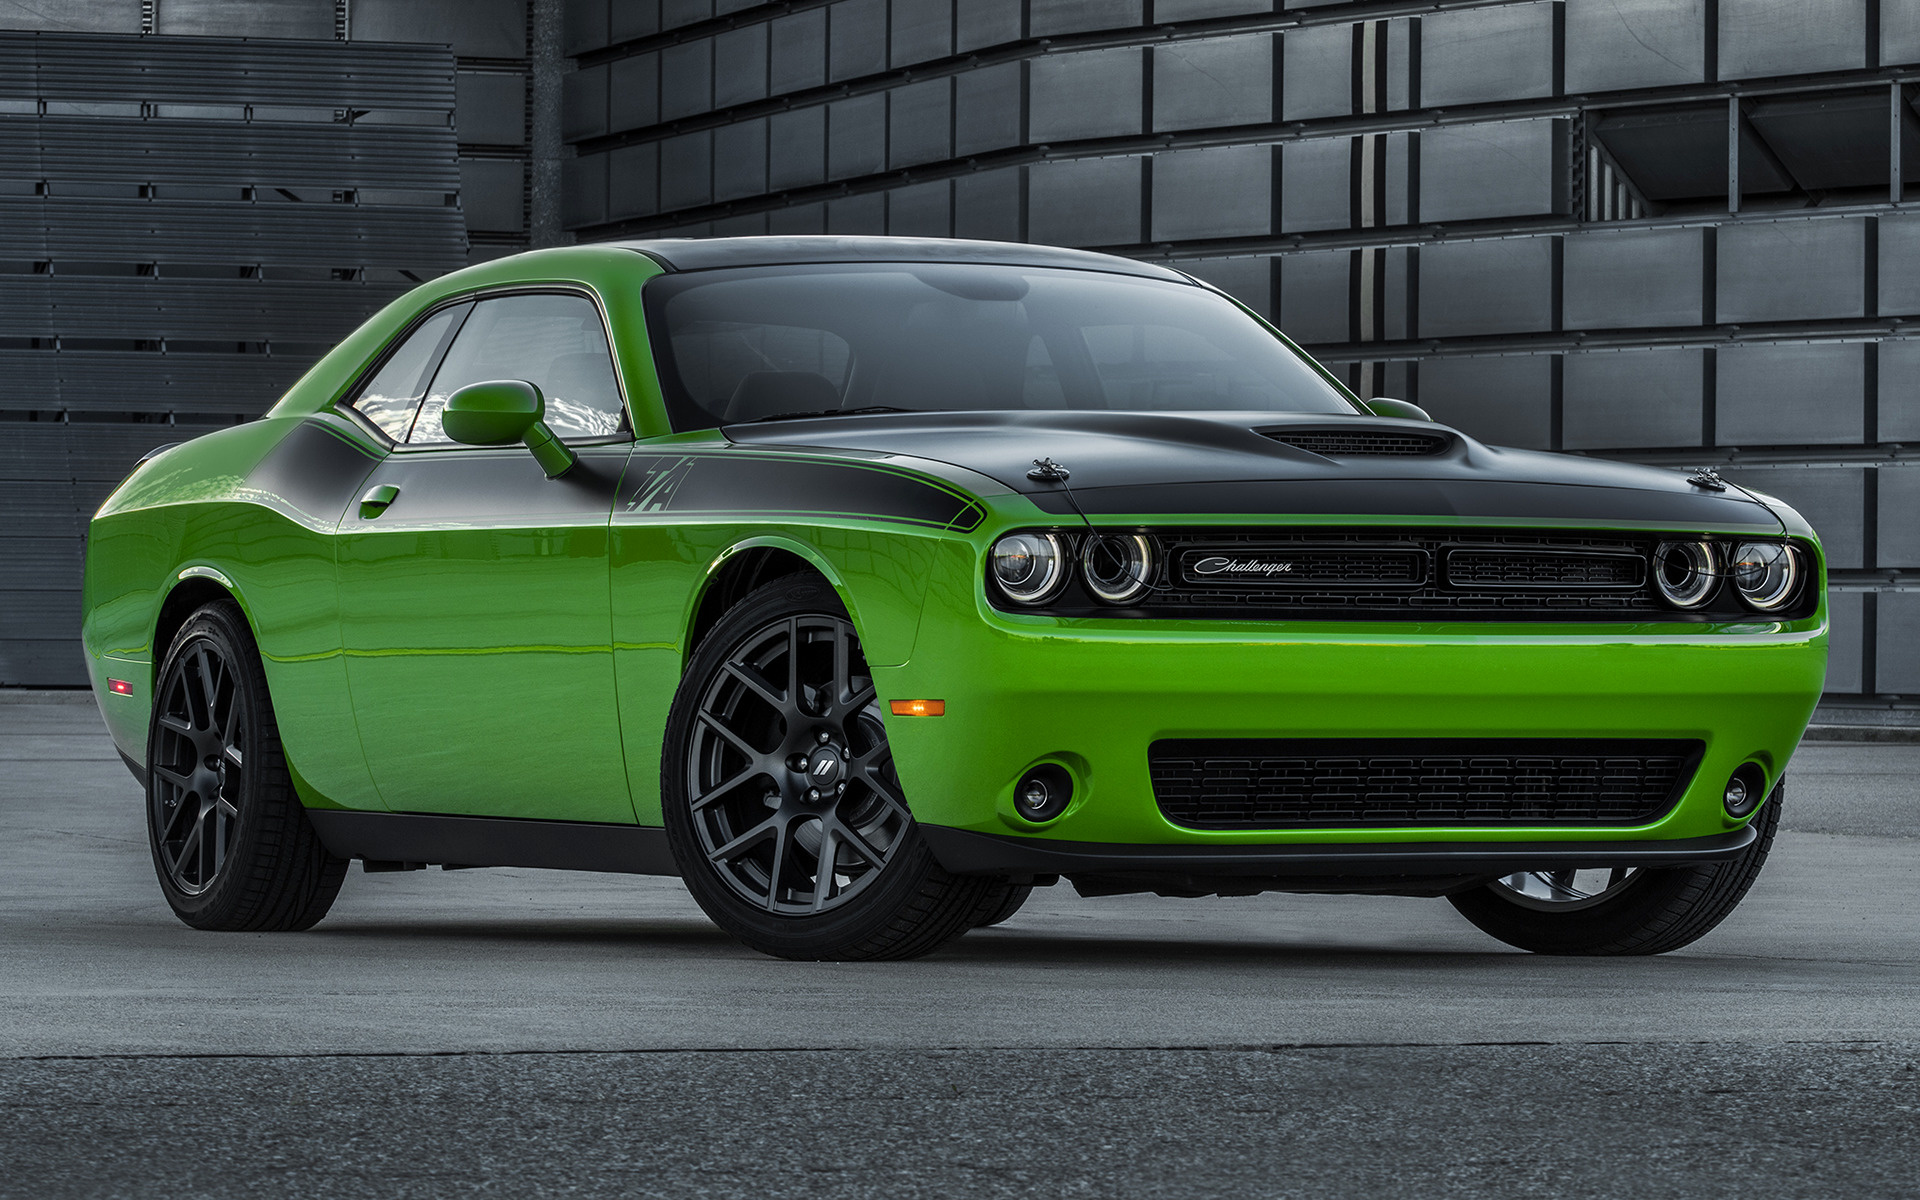 2016 Dodge Ram >> Dodge Challenger T/A (2017) Wallpapers and HD Images - Car Pixel